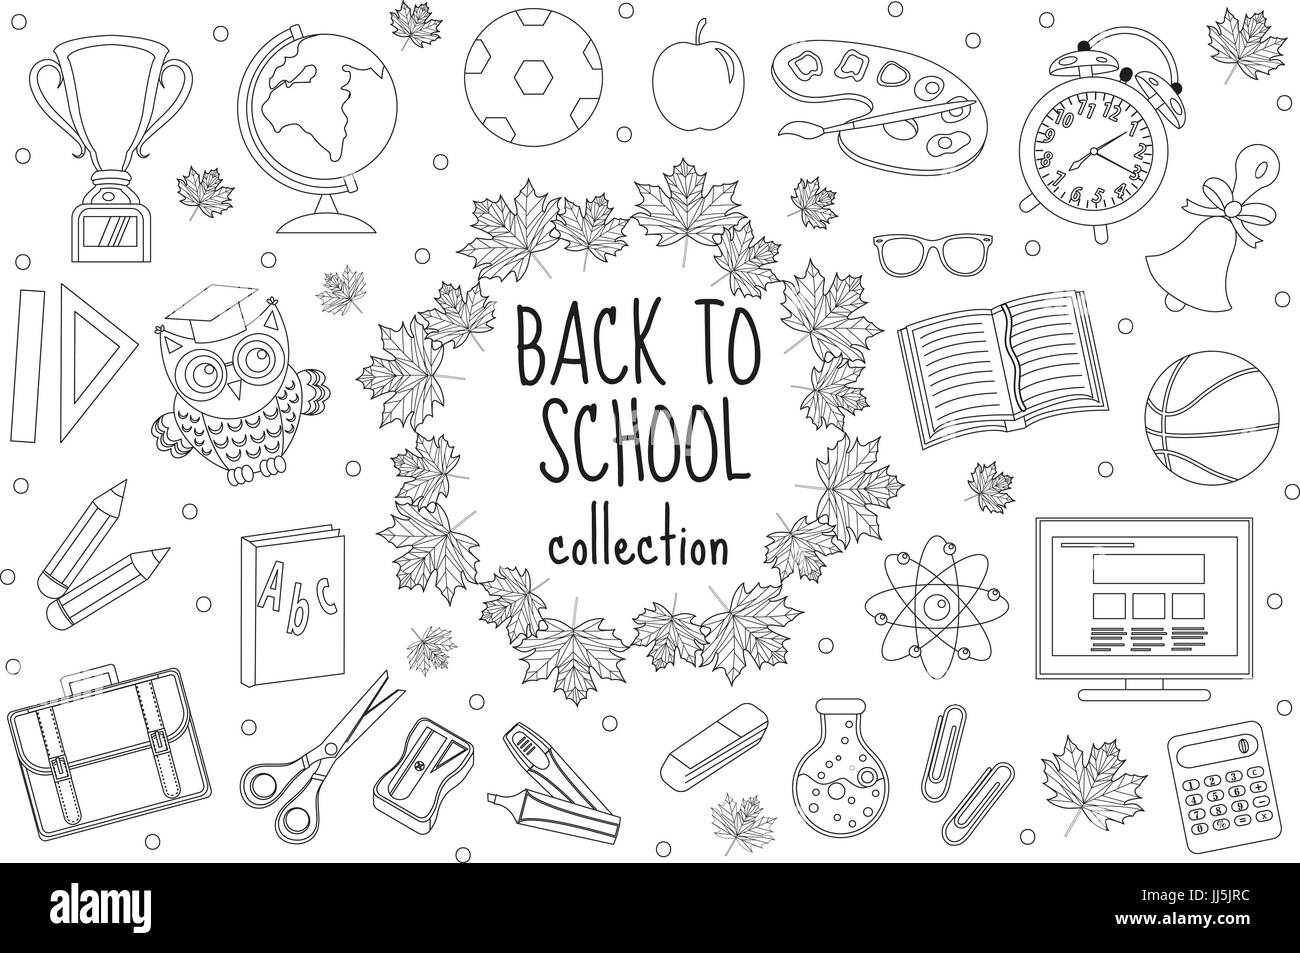 school clip art black and white | School coloring pages, School ... | 953x1300